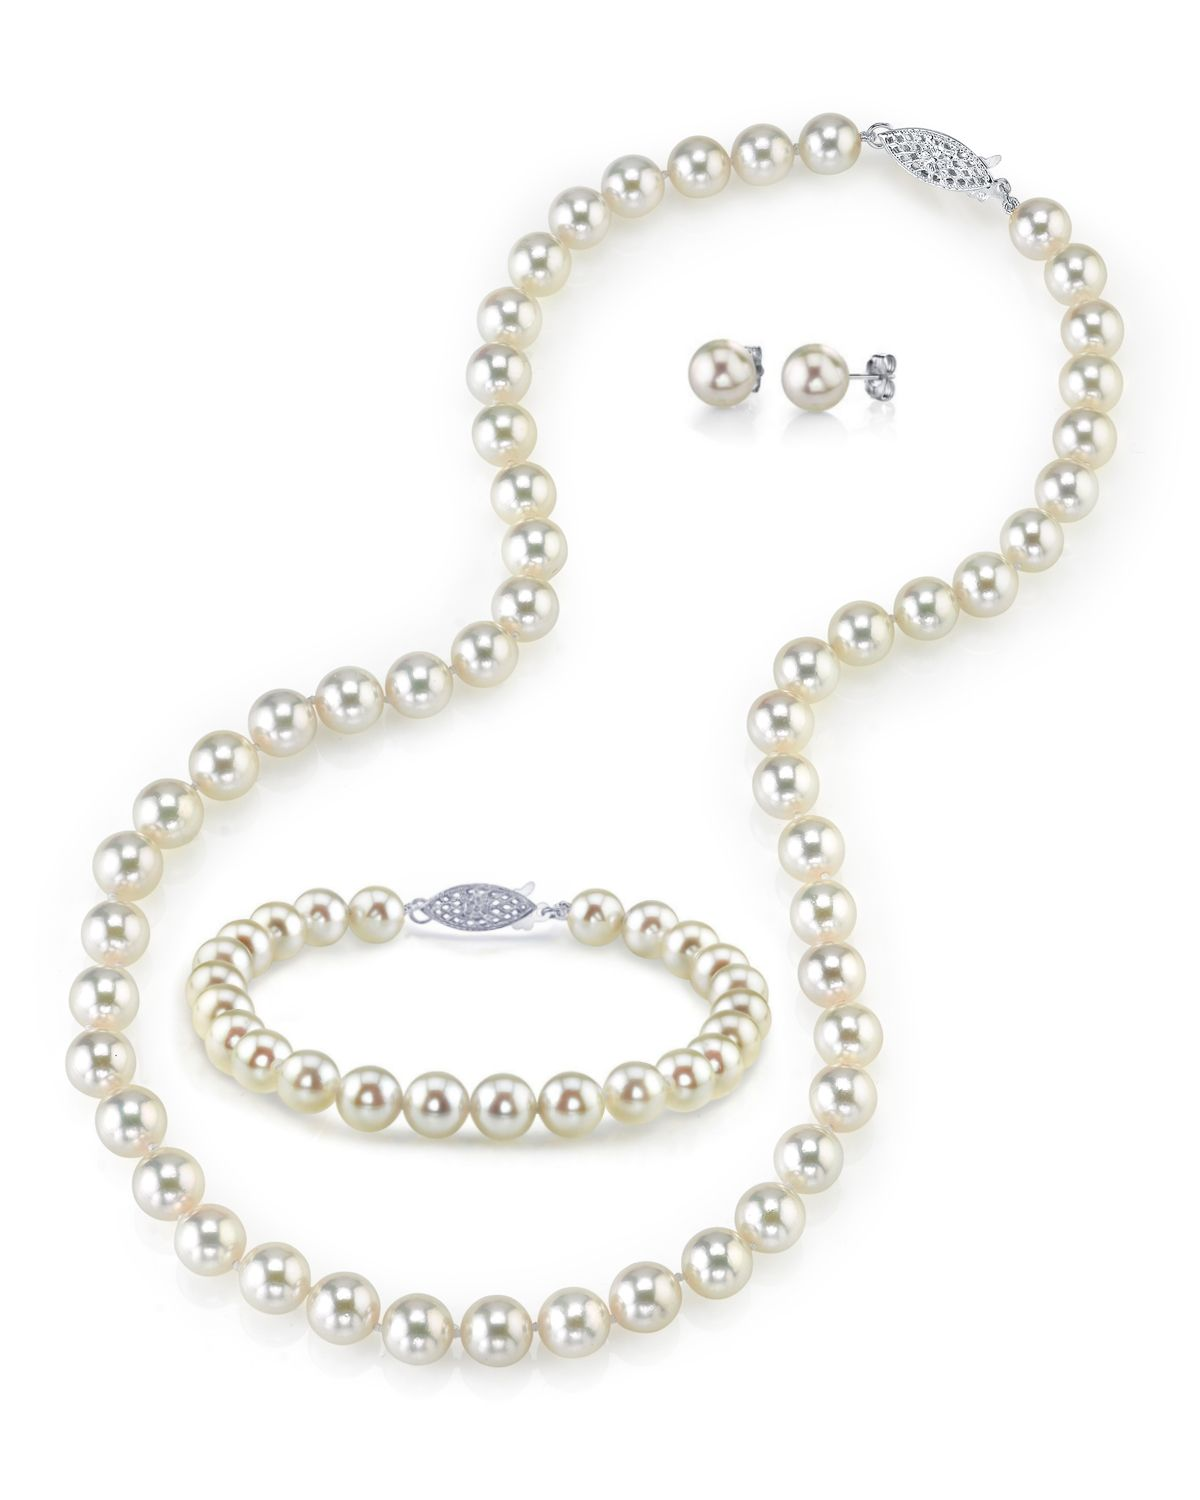 7.0-7.5mm Japanese Akoya White Pearl Set